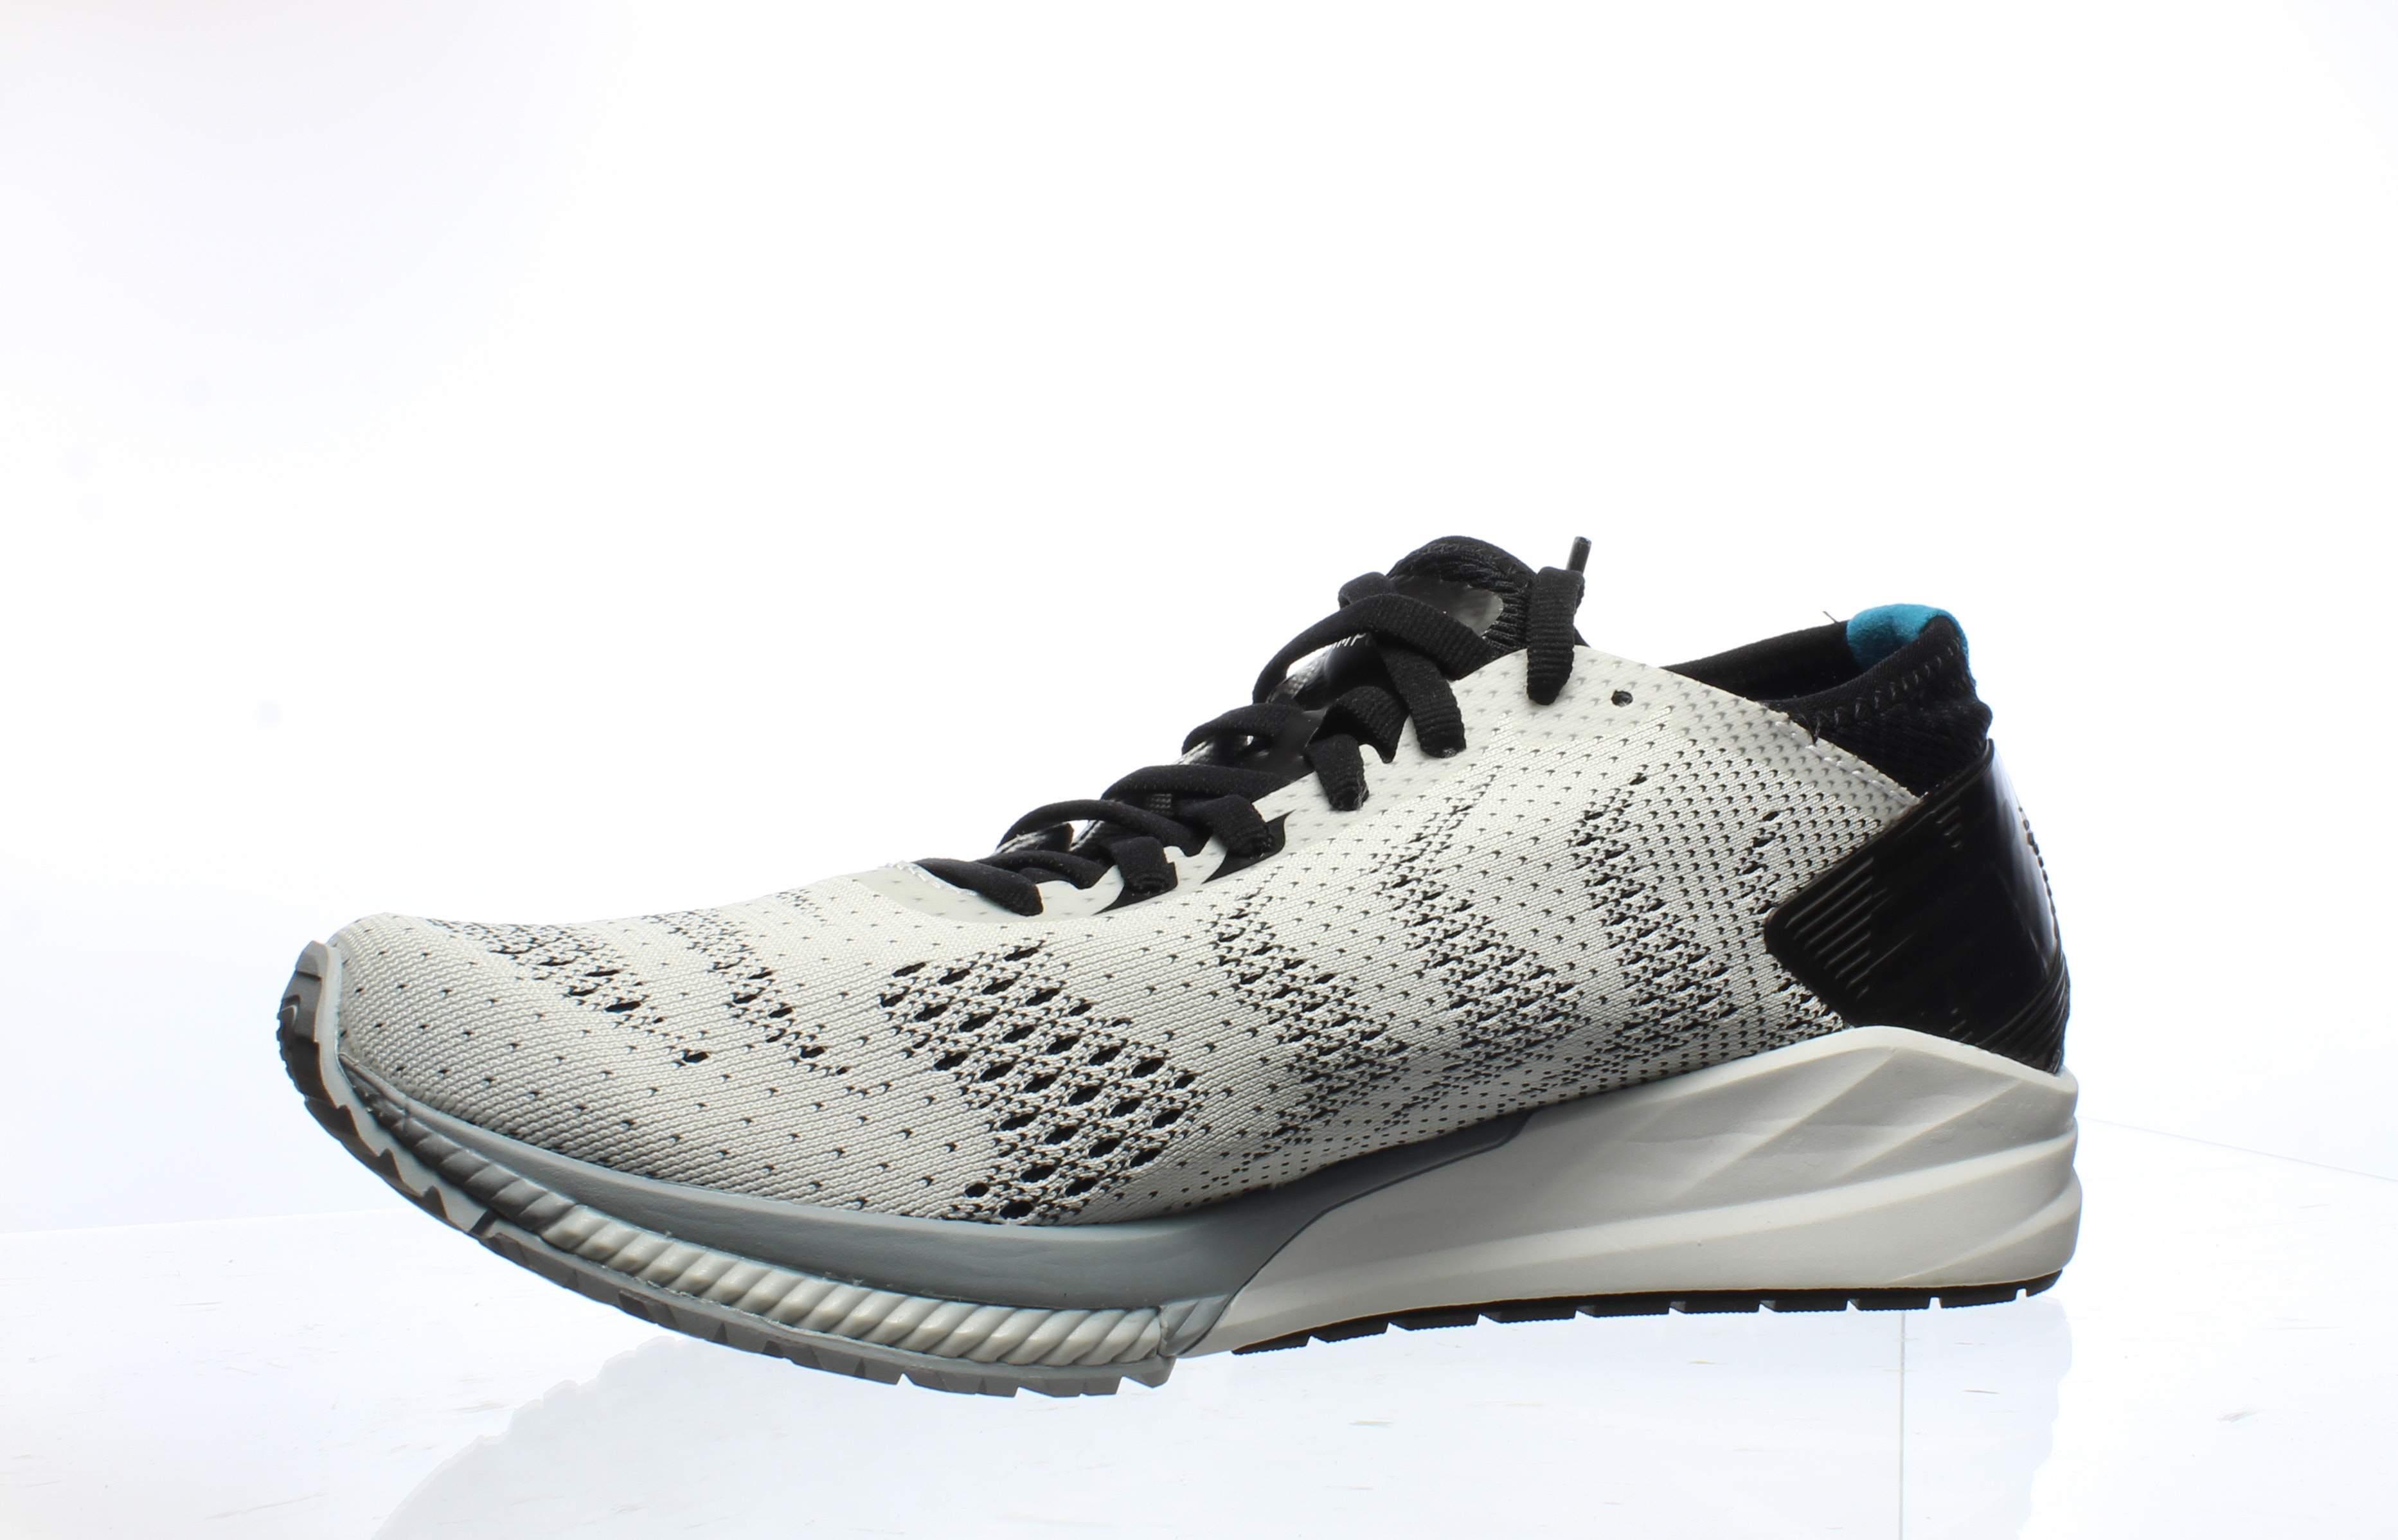 New-Balance-Mens-Mfcimwg-White-Running-Shoes-Size-8-1227441 thumbnail 2